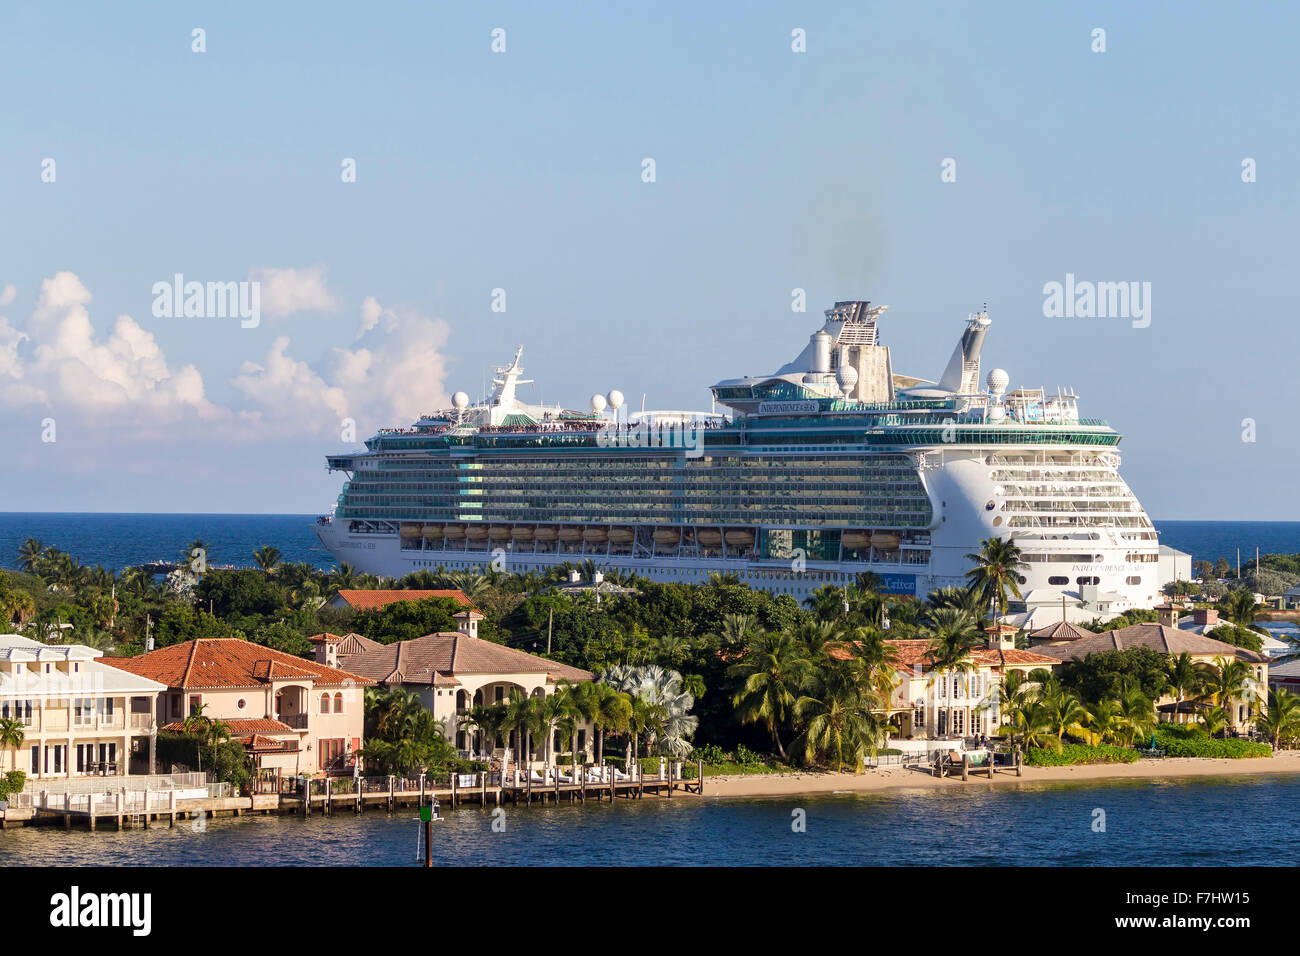 Royal Caribbeans Independence of the Seas  leaving  Port Everglades, Fort Lauderdale Florida - Stock Image